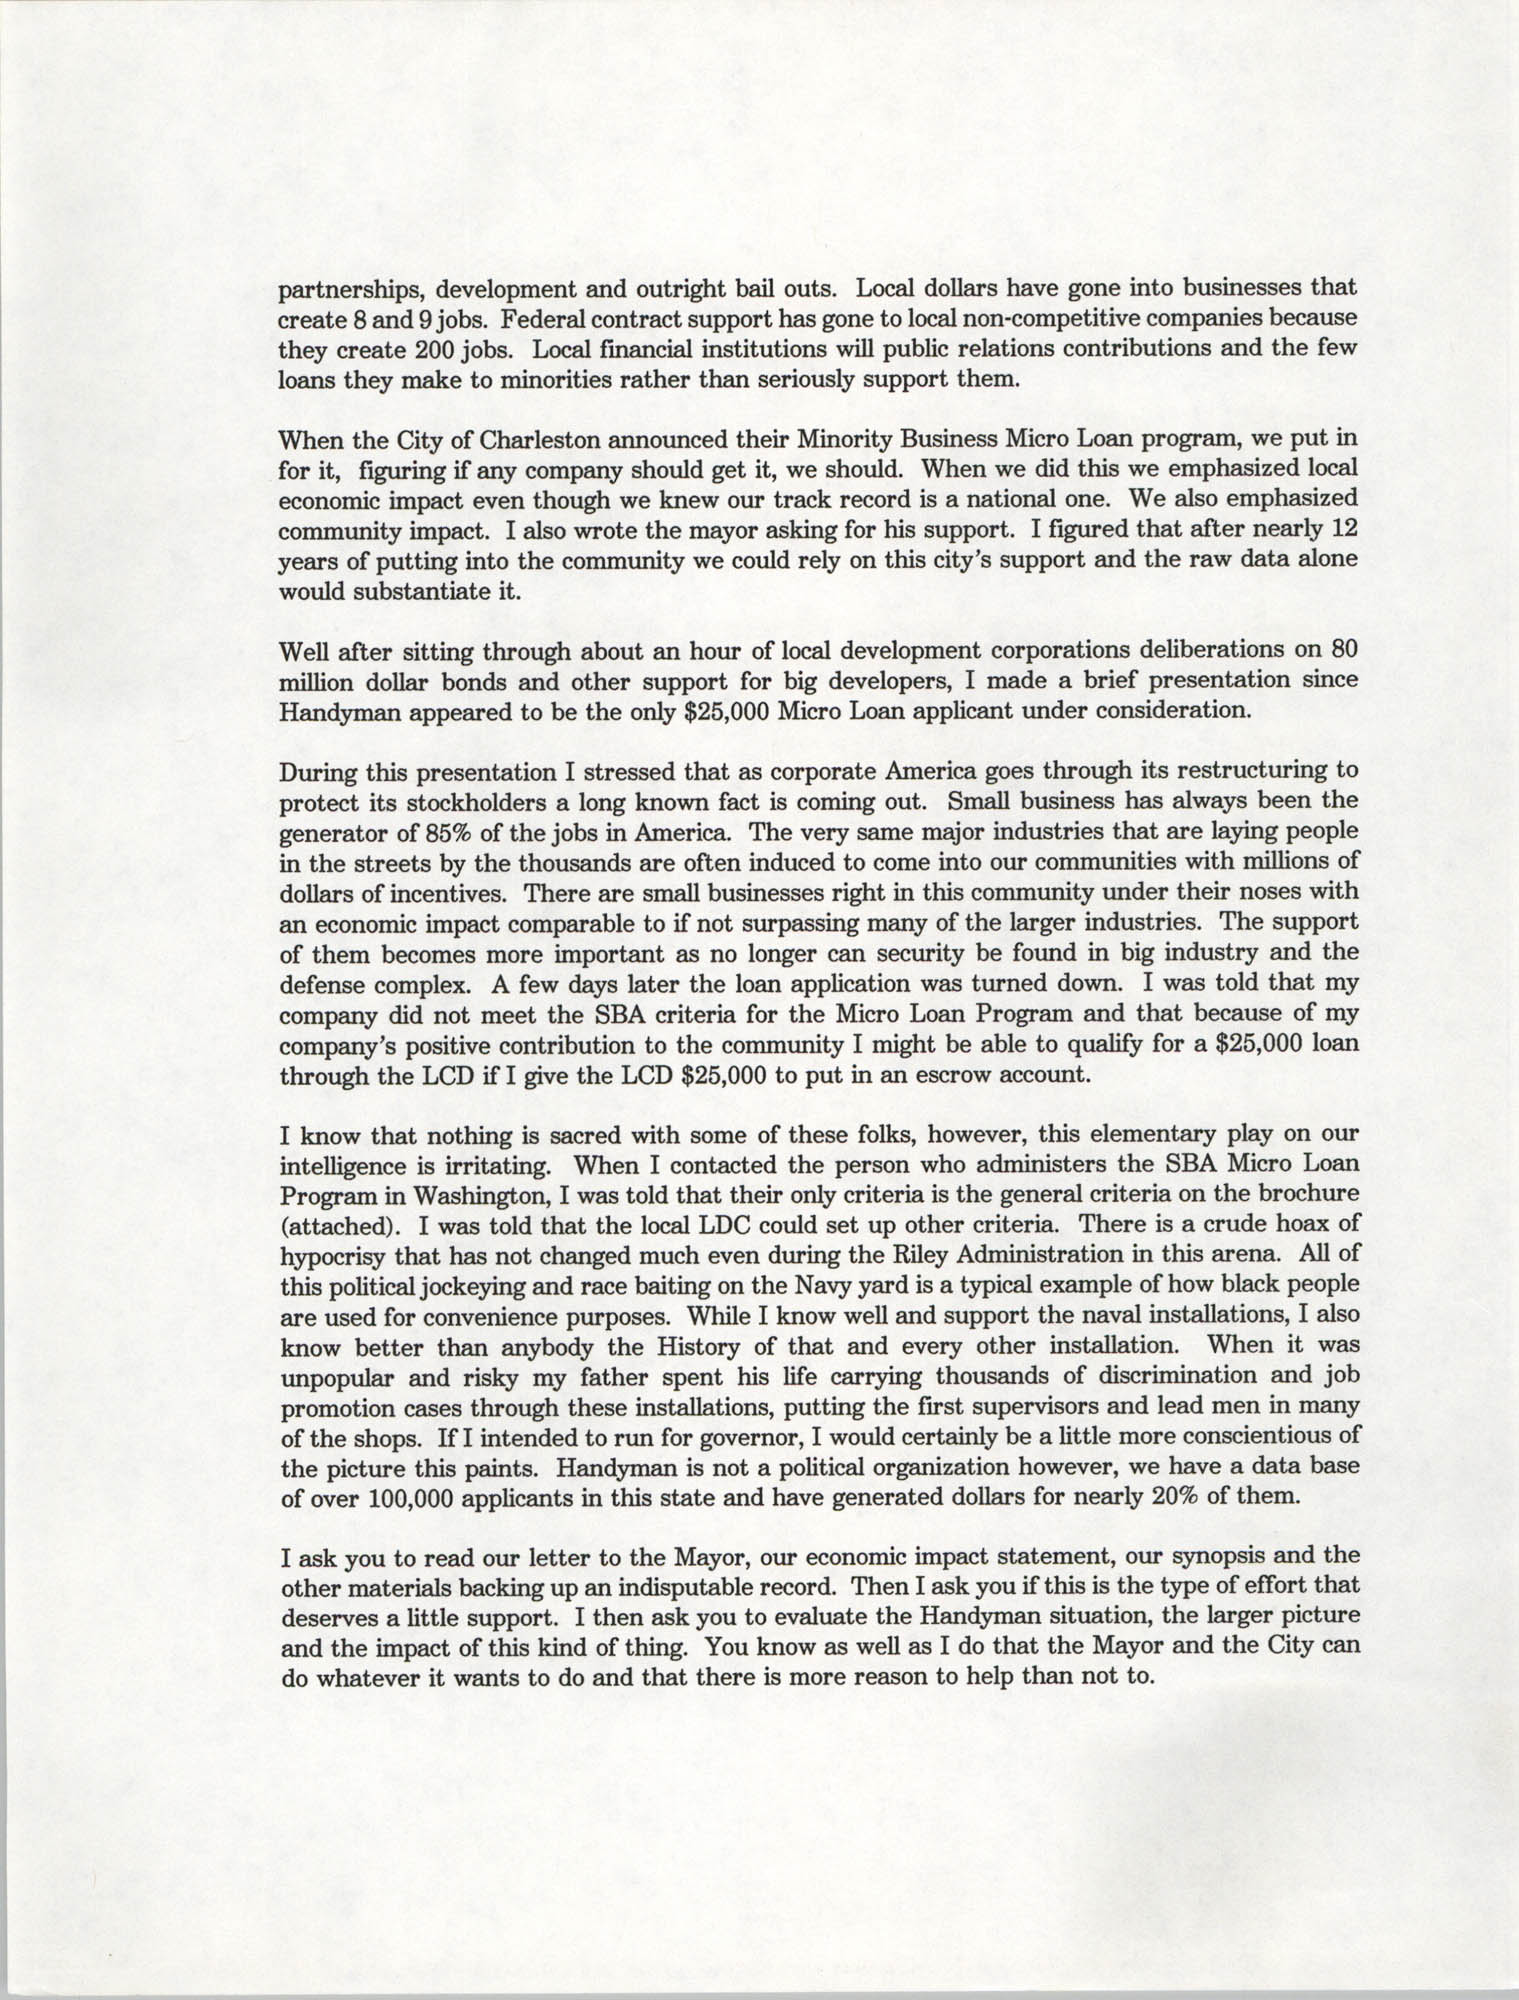 Letter from Andre V. Woods to Dwight James, March 19, 1993, Page 2